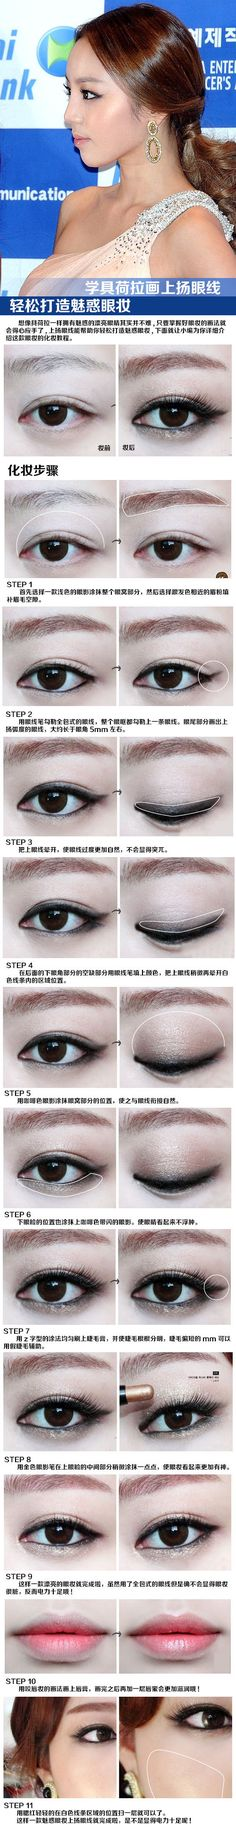 Party Makeup Korean Make Up 16 Trendy Ideas - My best makeup list Asian Make Up, Korean Make Up, Party Make-up, Ideas Party, Party Eyes, Ulzzang, Party Makeup Looks, Asian Eye Makeup, Korean Makeup Tutorials